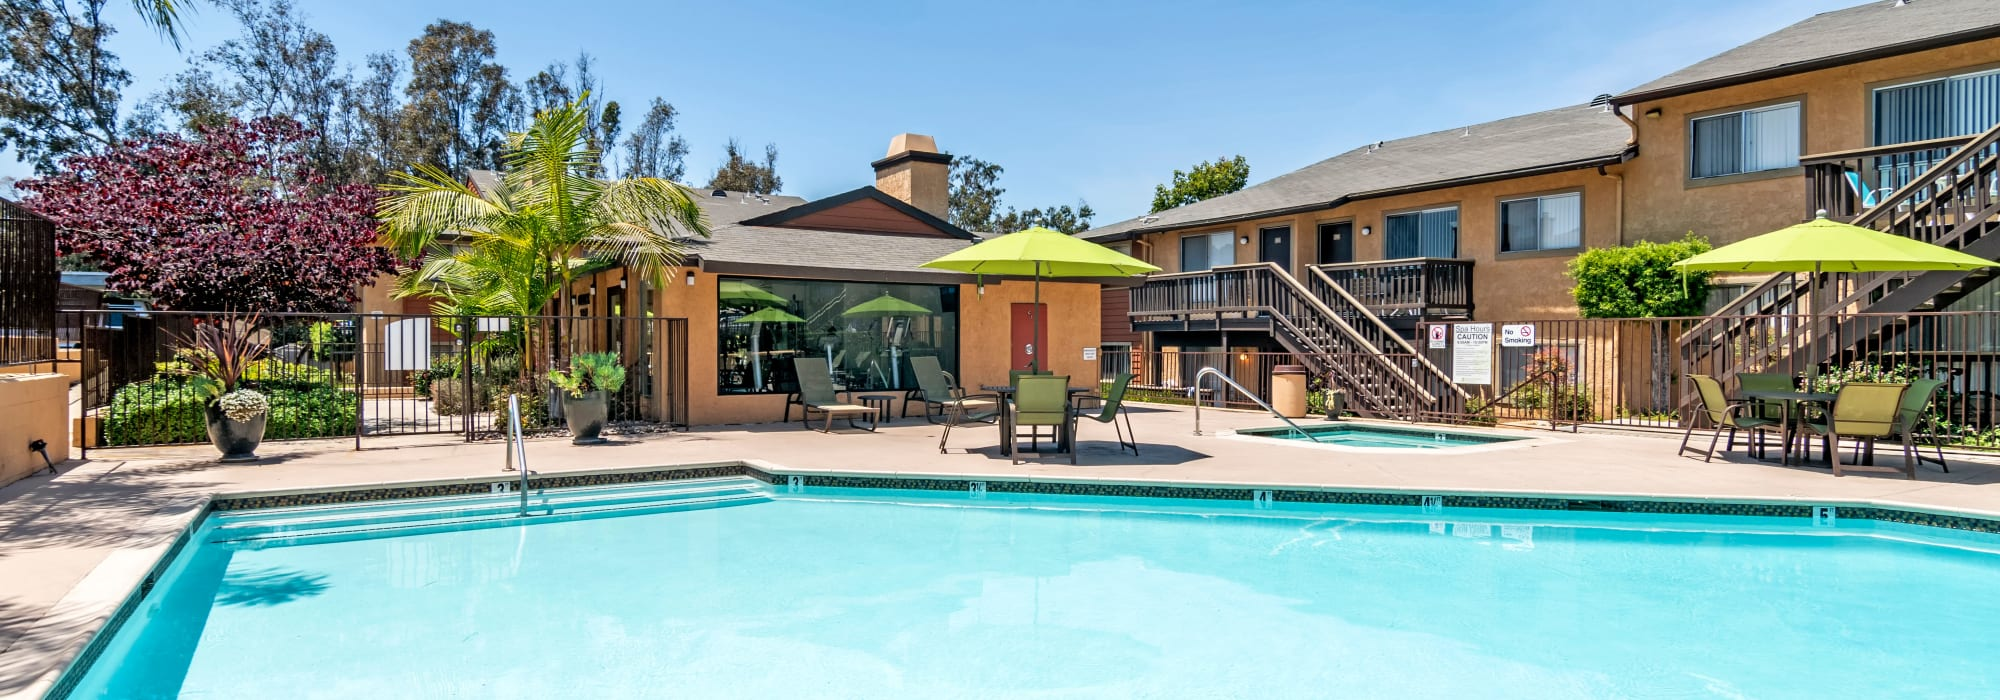 Apply to Hillside Terrace Apartments in Lemon Grove, California